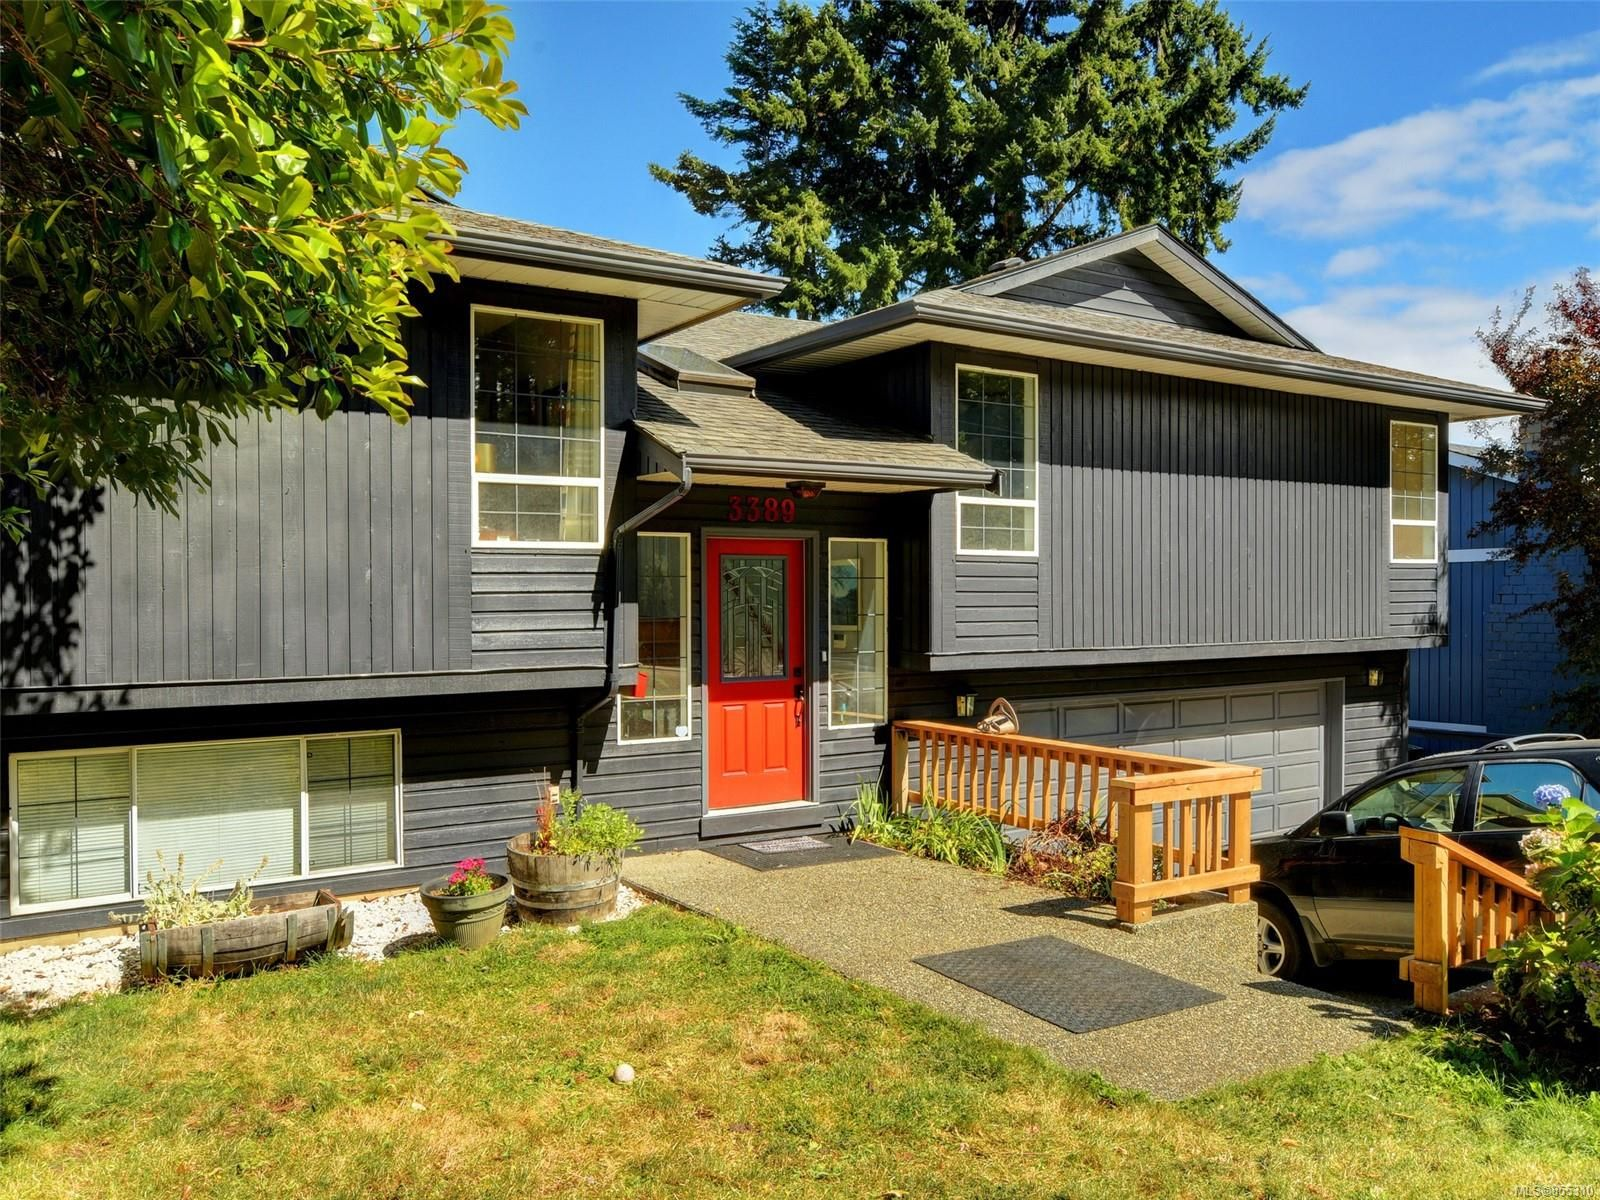 Main Photo: 3389 Mary Anne Cres in : Co Triangle House for sale (Colwood)  : MLS®# 855310